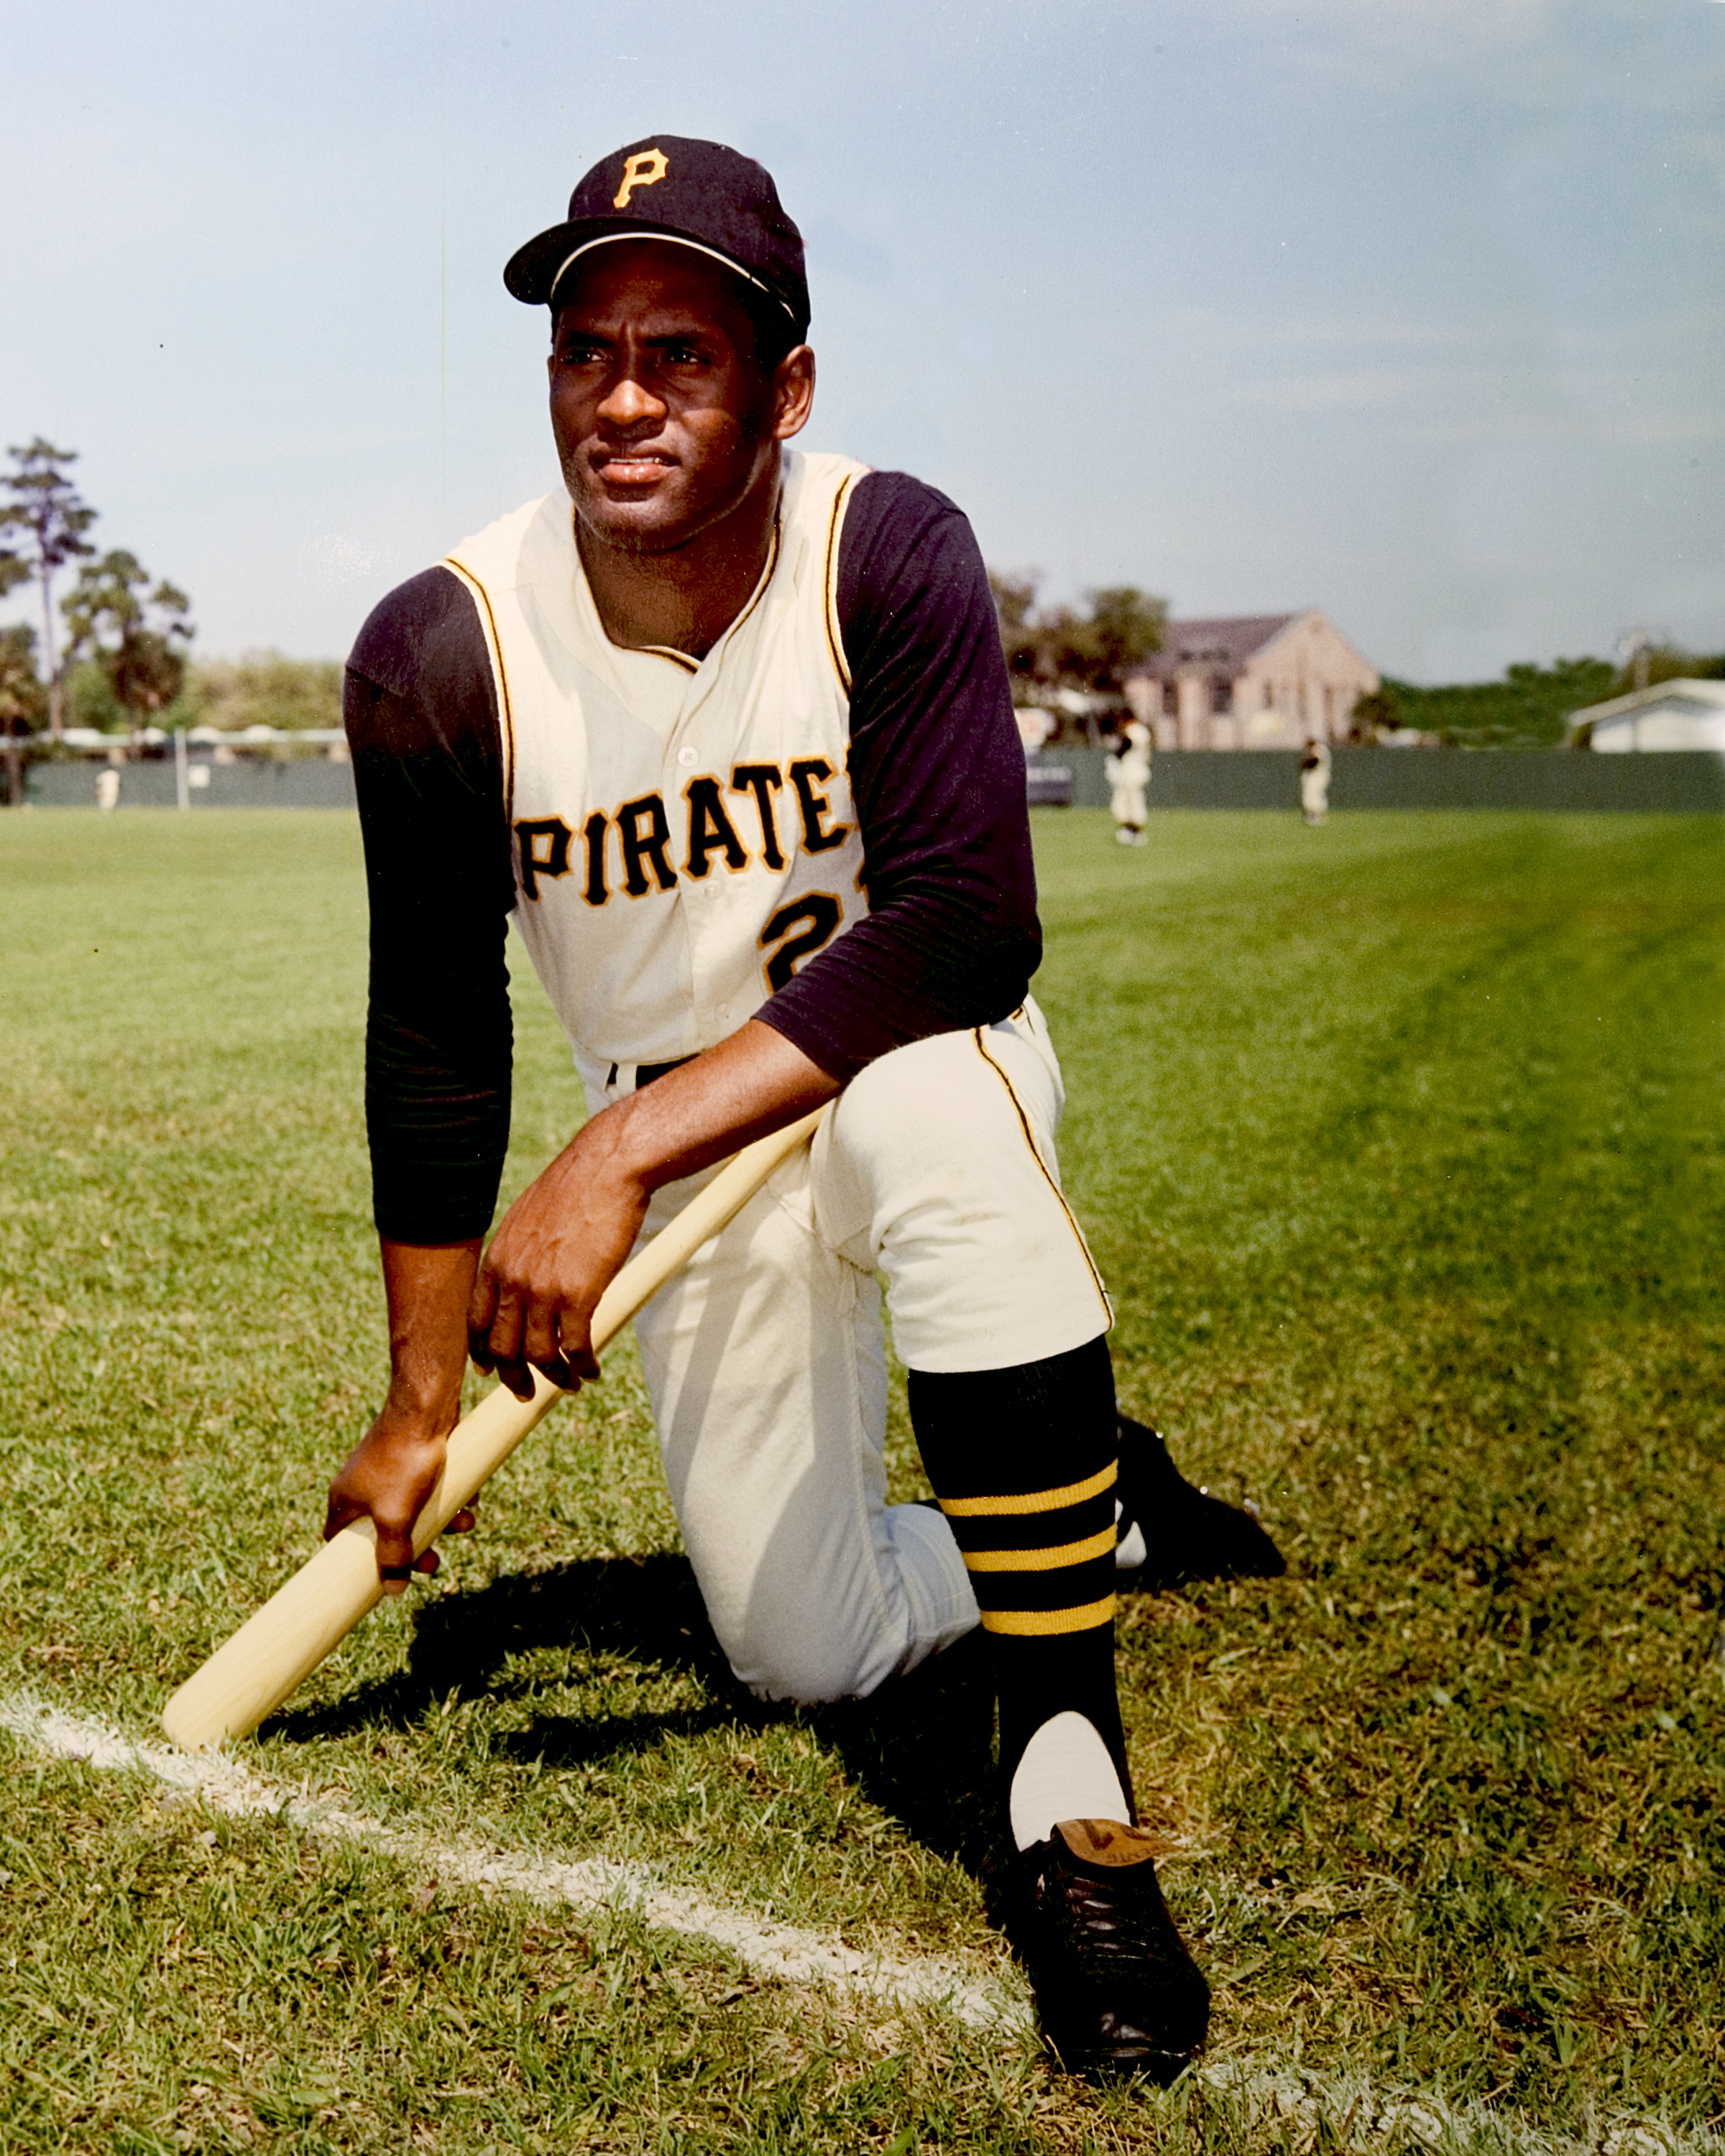 Roberto Clemente inspired many Latin players to never give up on their dreams and to fight through the racism and hate they received.